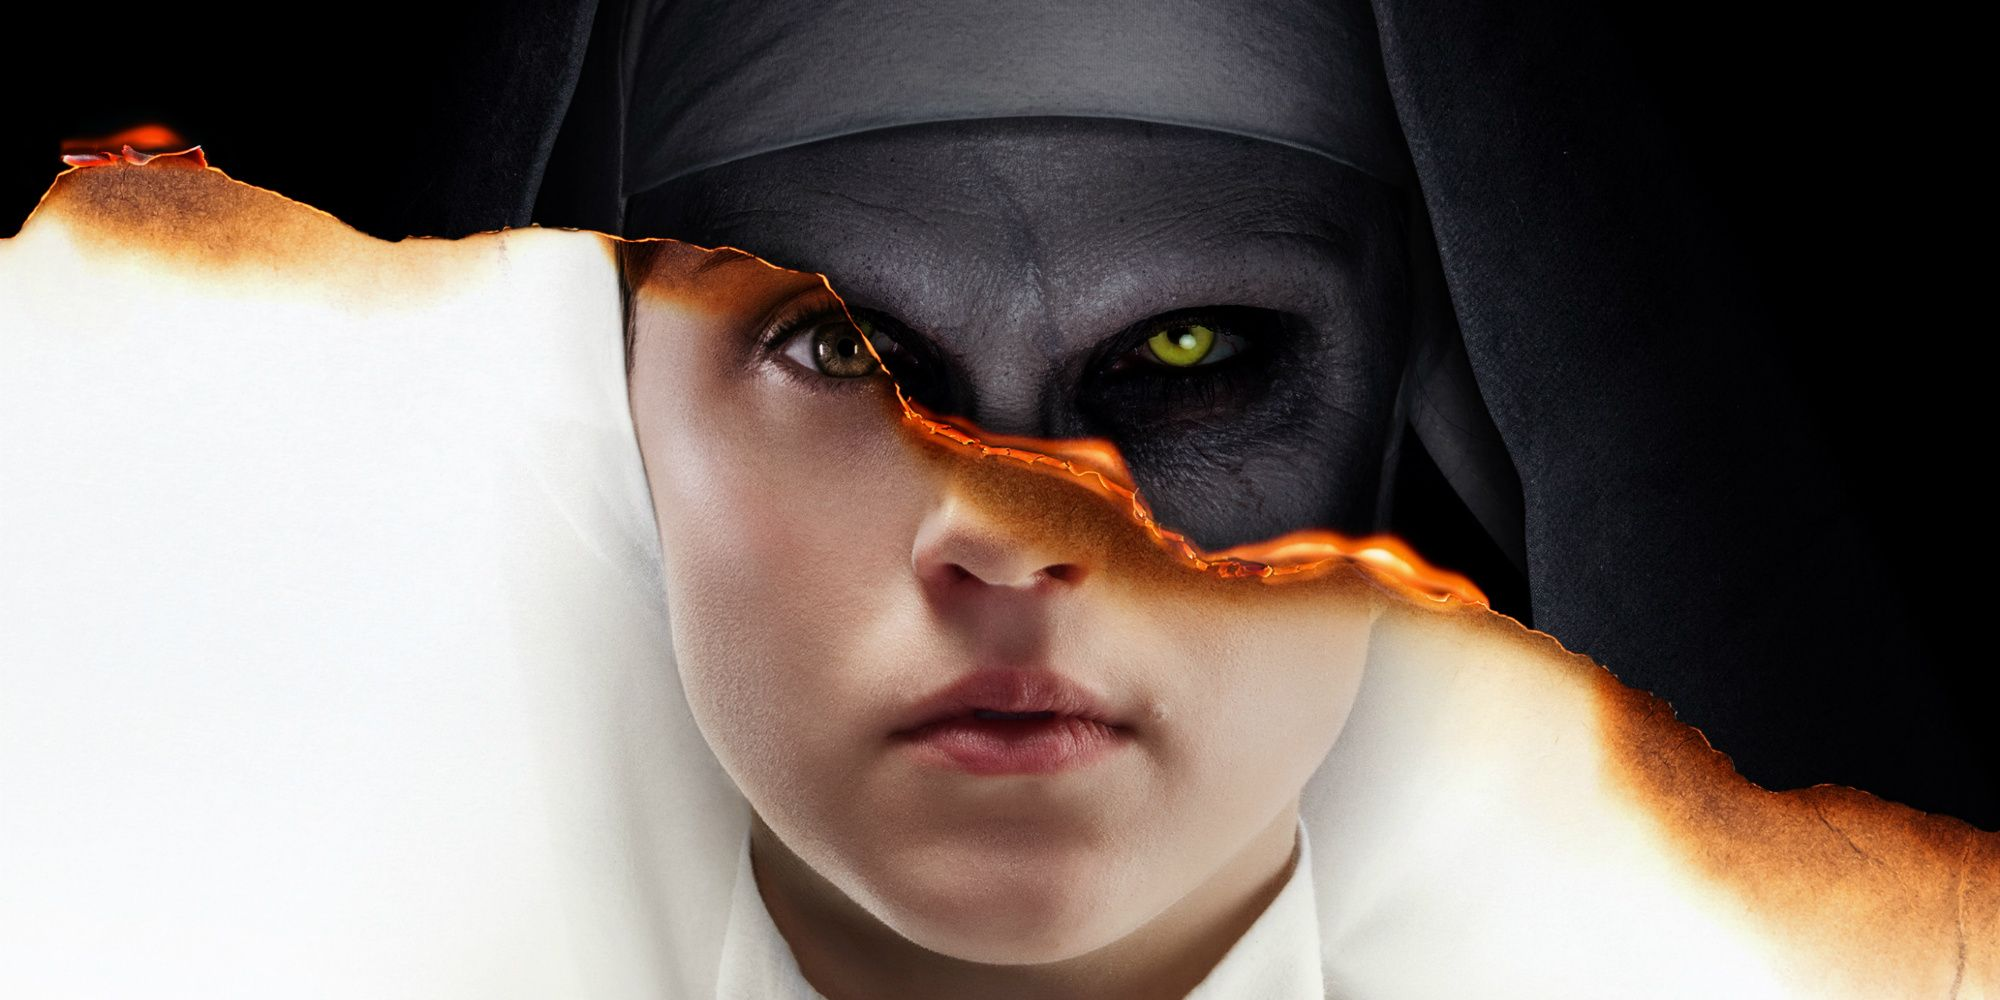 Horror Movies 2018 Poster: The Nun Movie Poster Arrives Ahead Of Comic-Con 2018 Panel